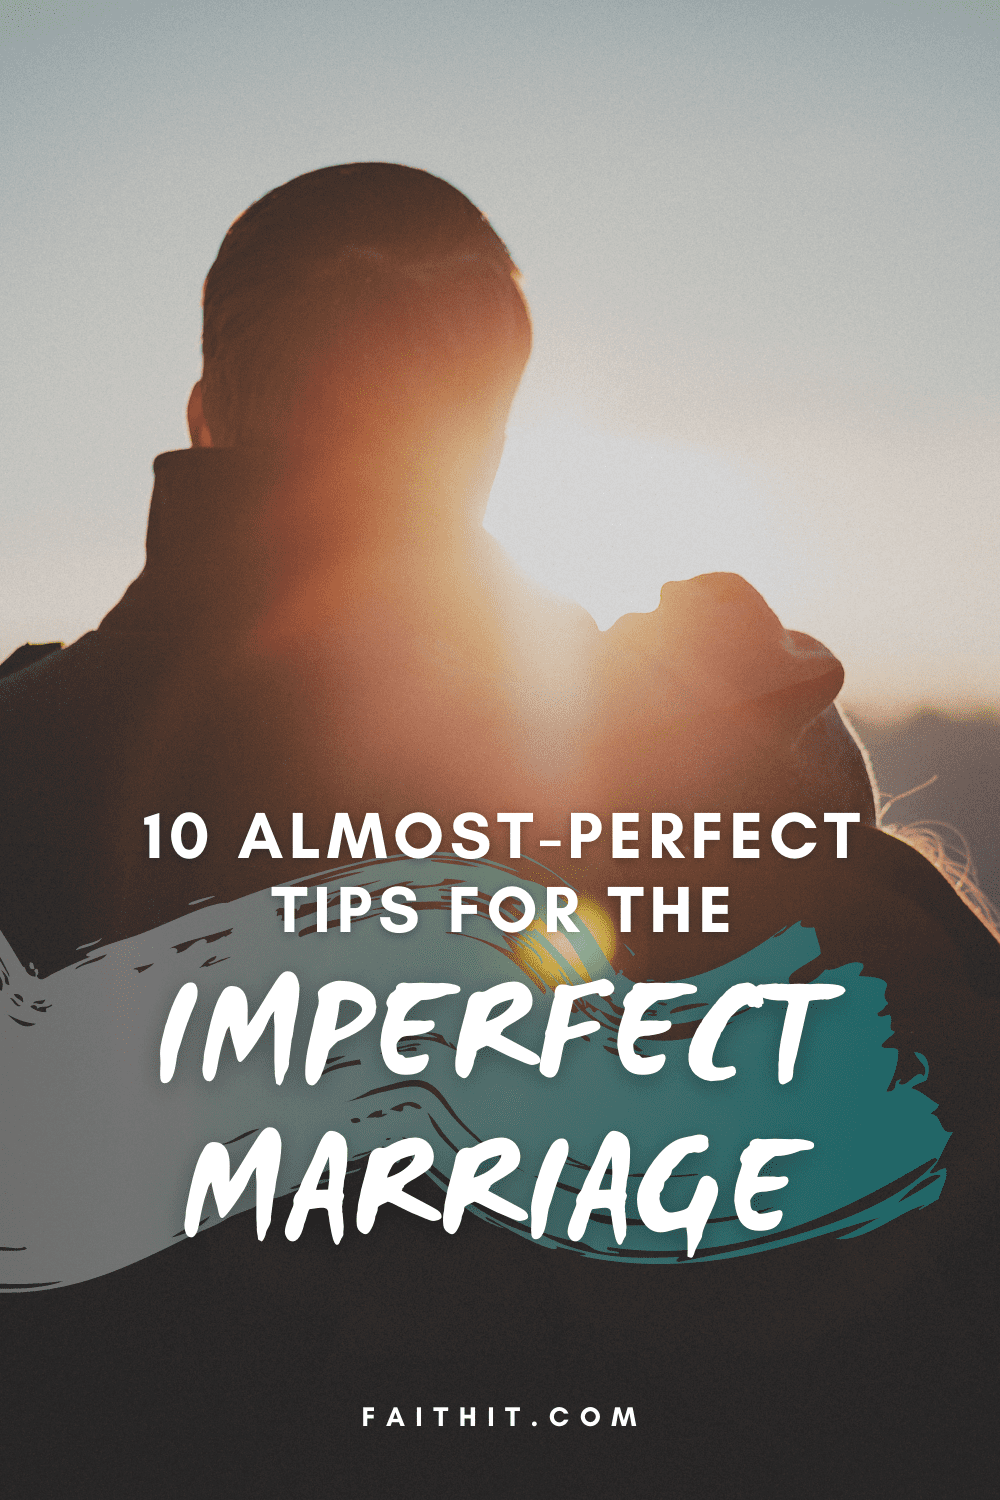 tips for an imperfect marriage